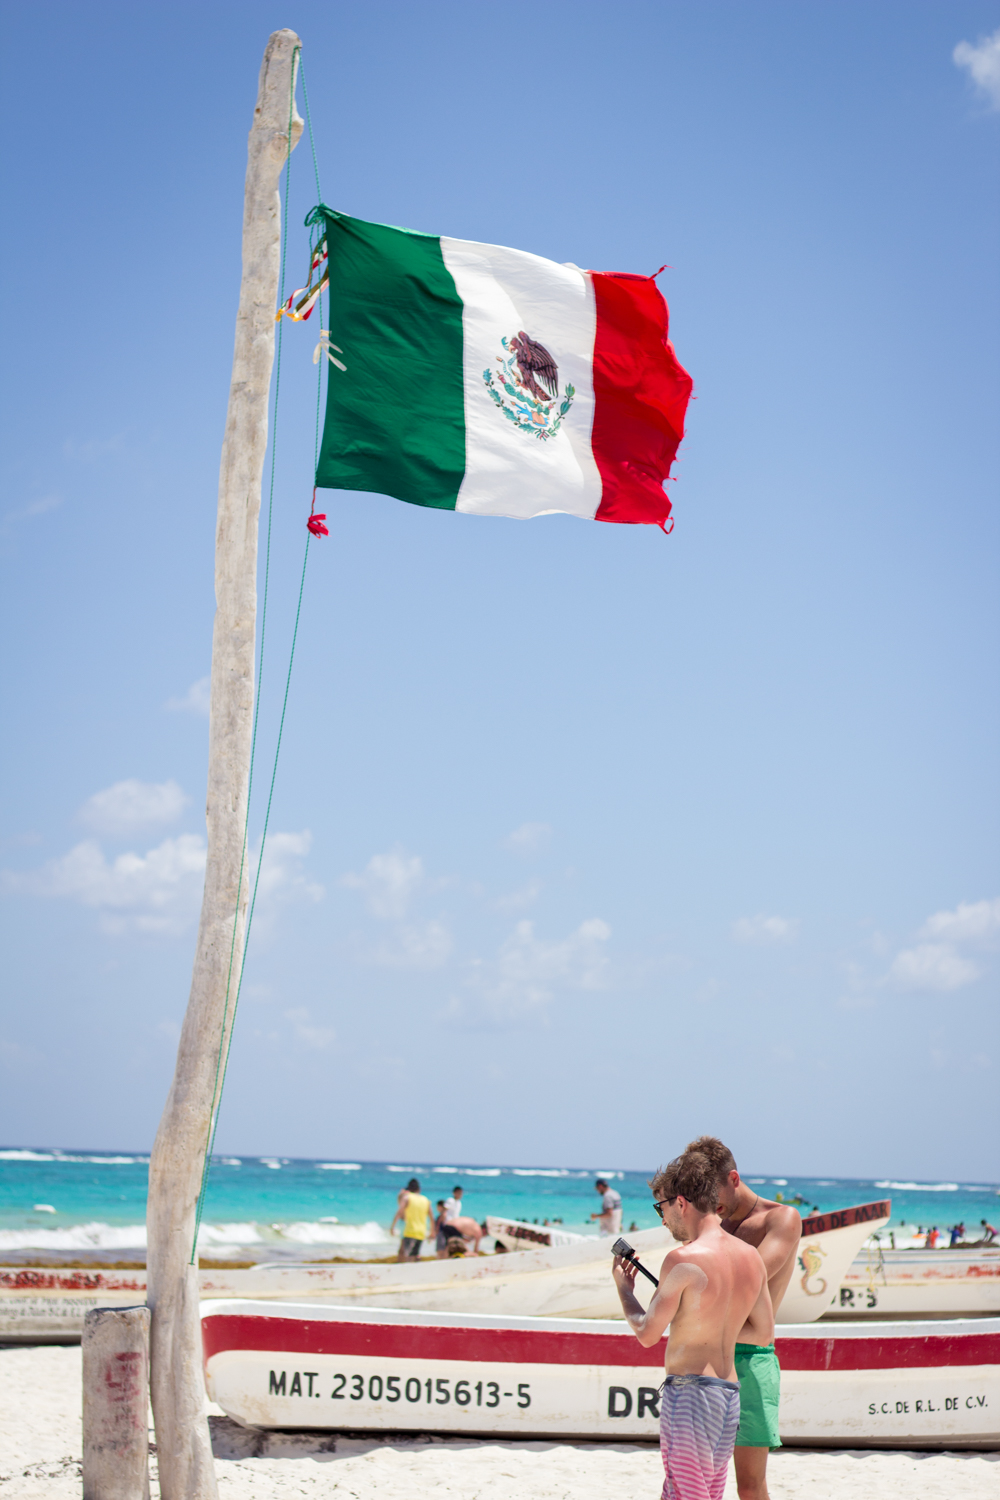 Mexico flag at the beach in Tulum, Mexico